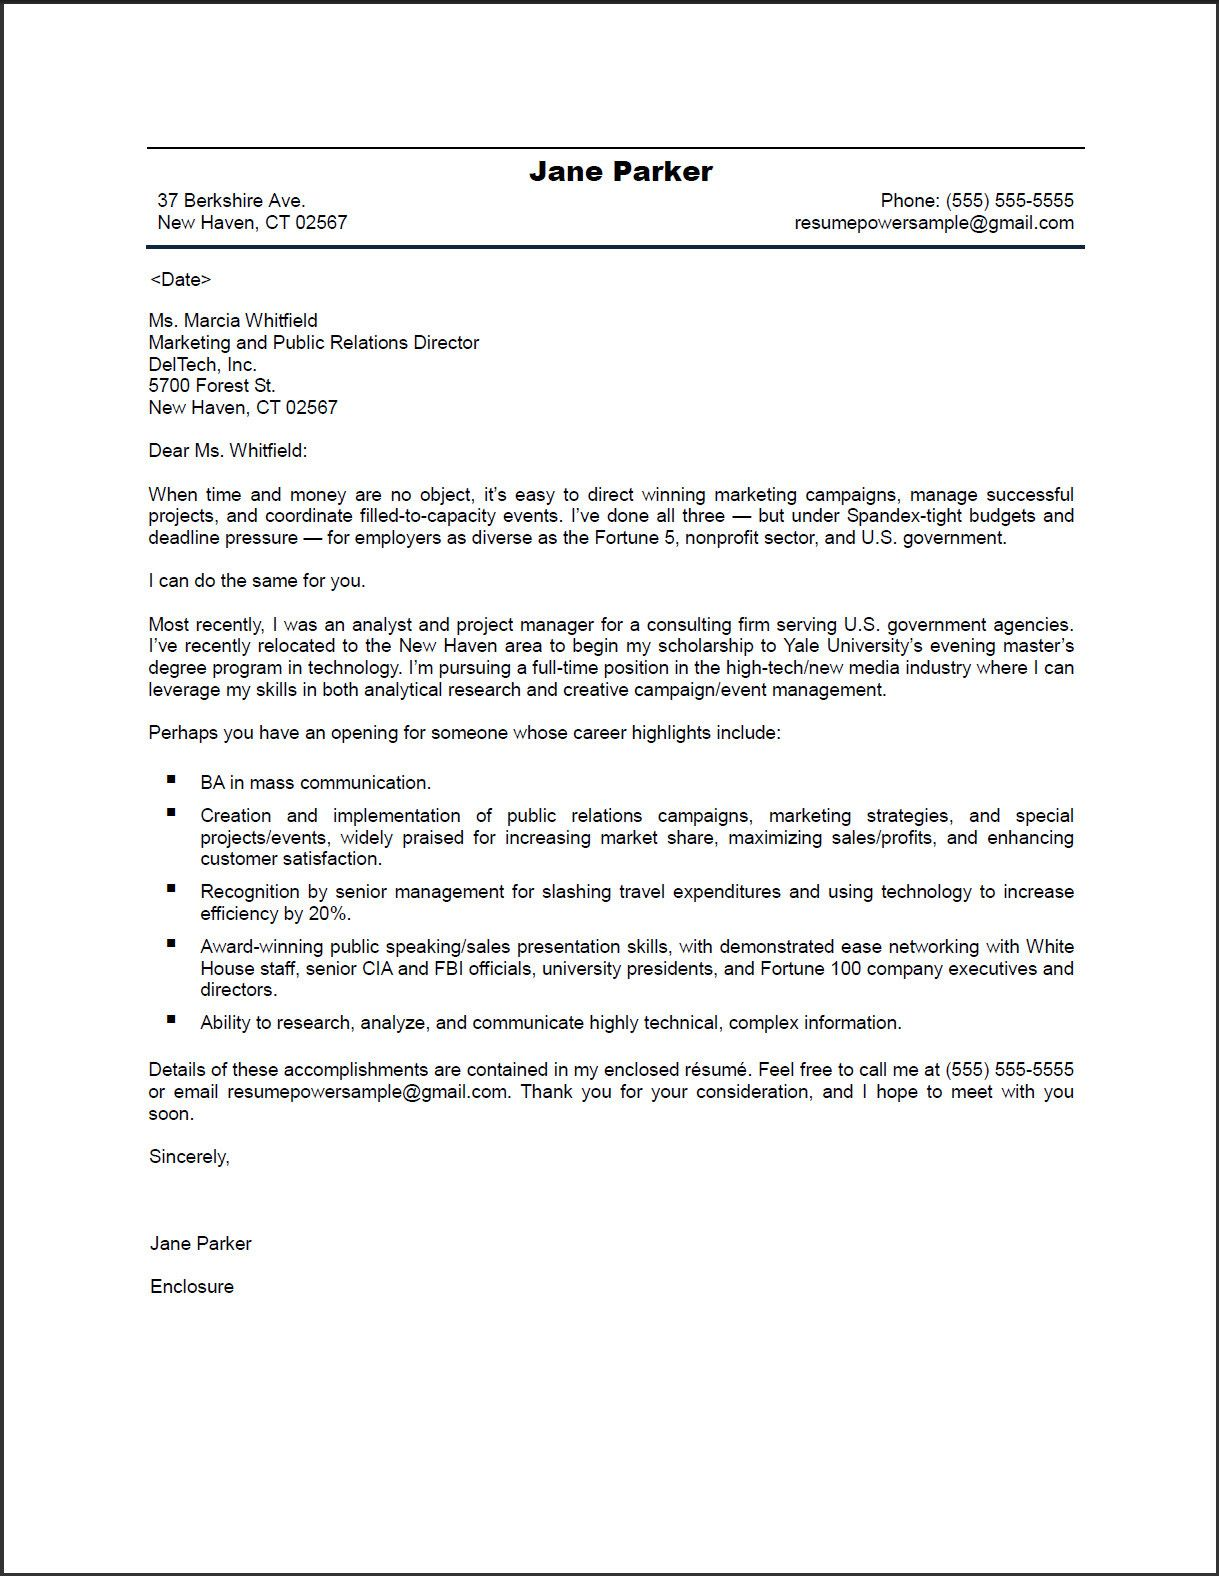 PR Marketing Cover Letter | ResumePower | inspirational | Pinterest ...